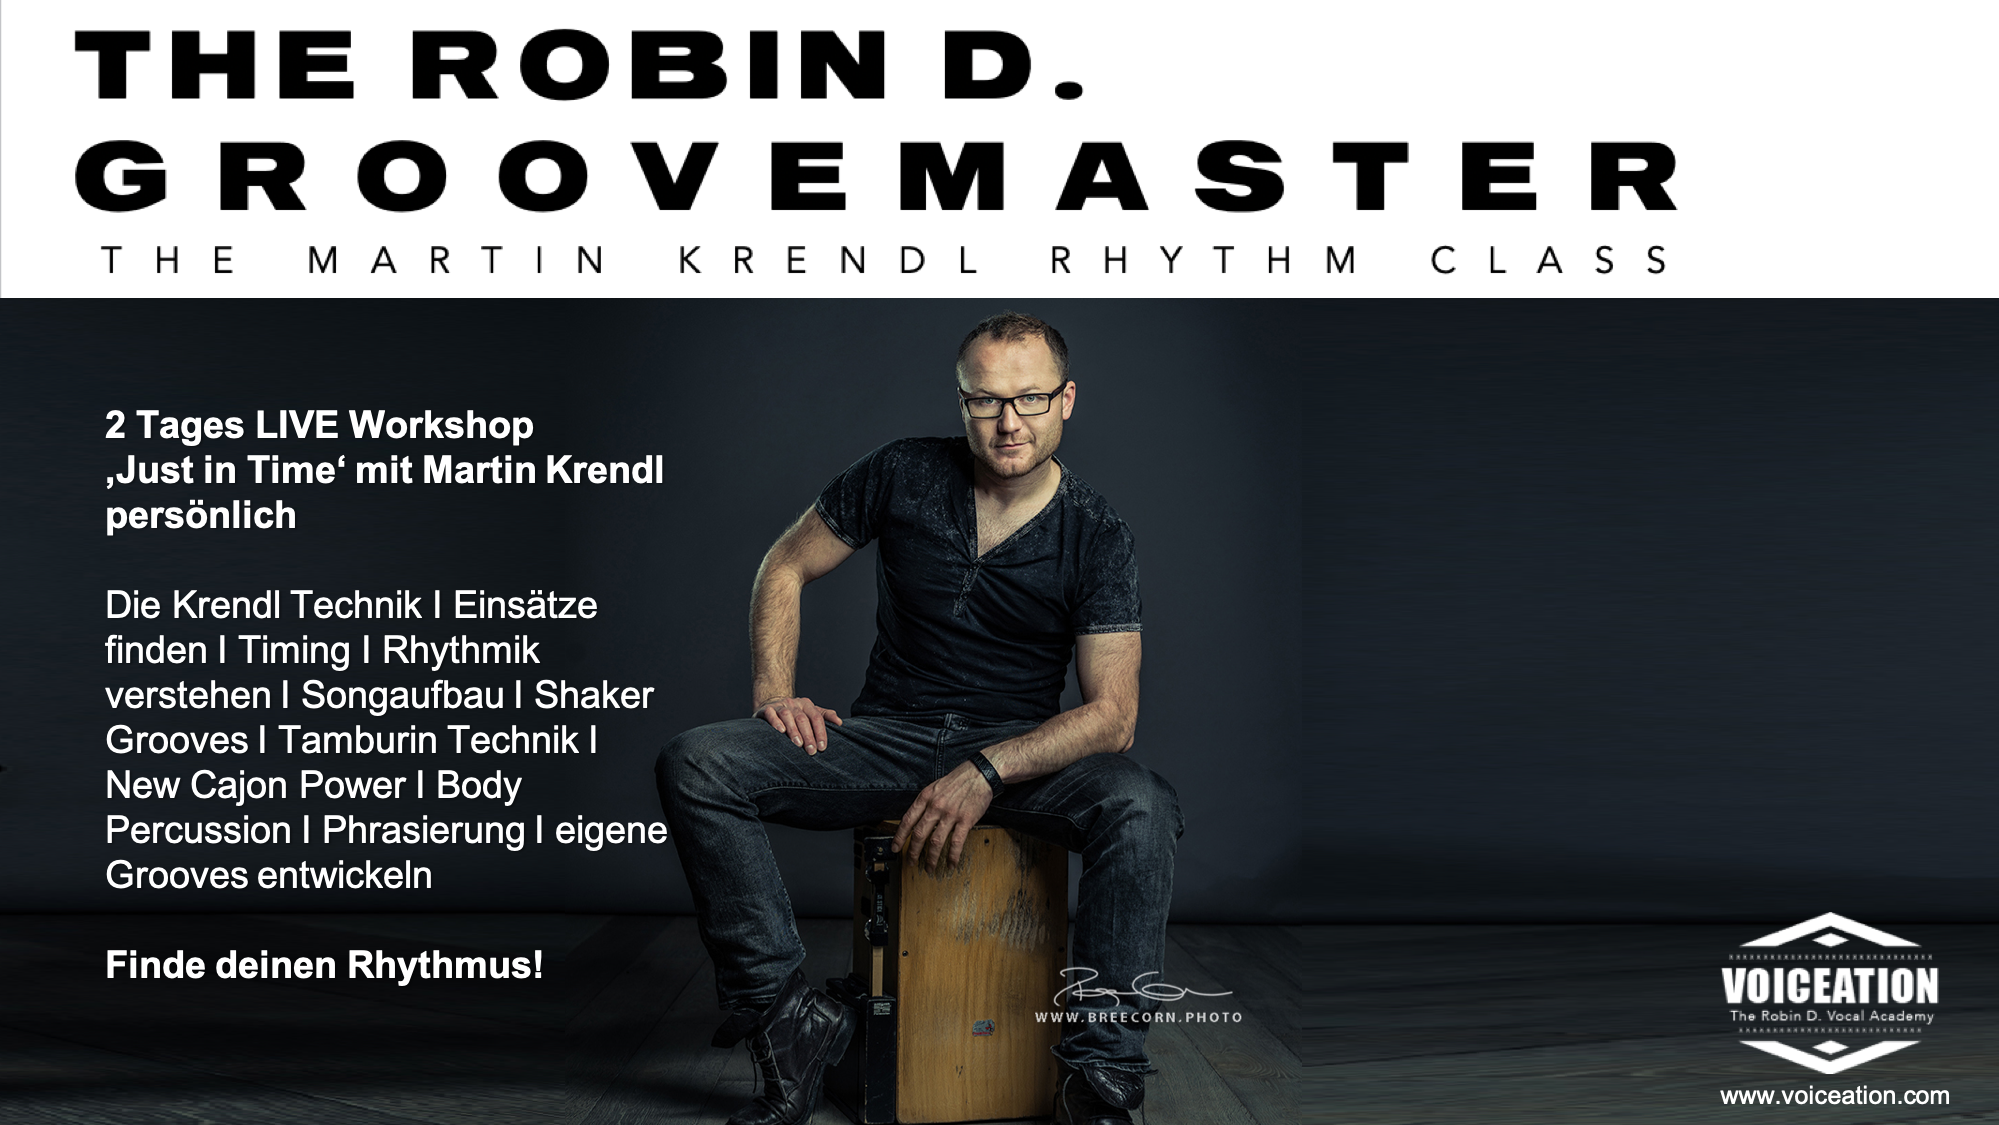 The Robin D. Groovemaster